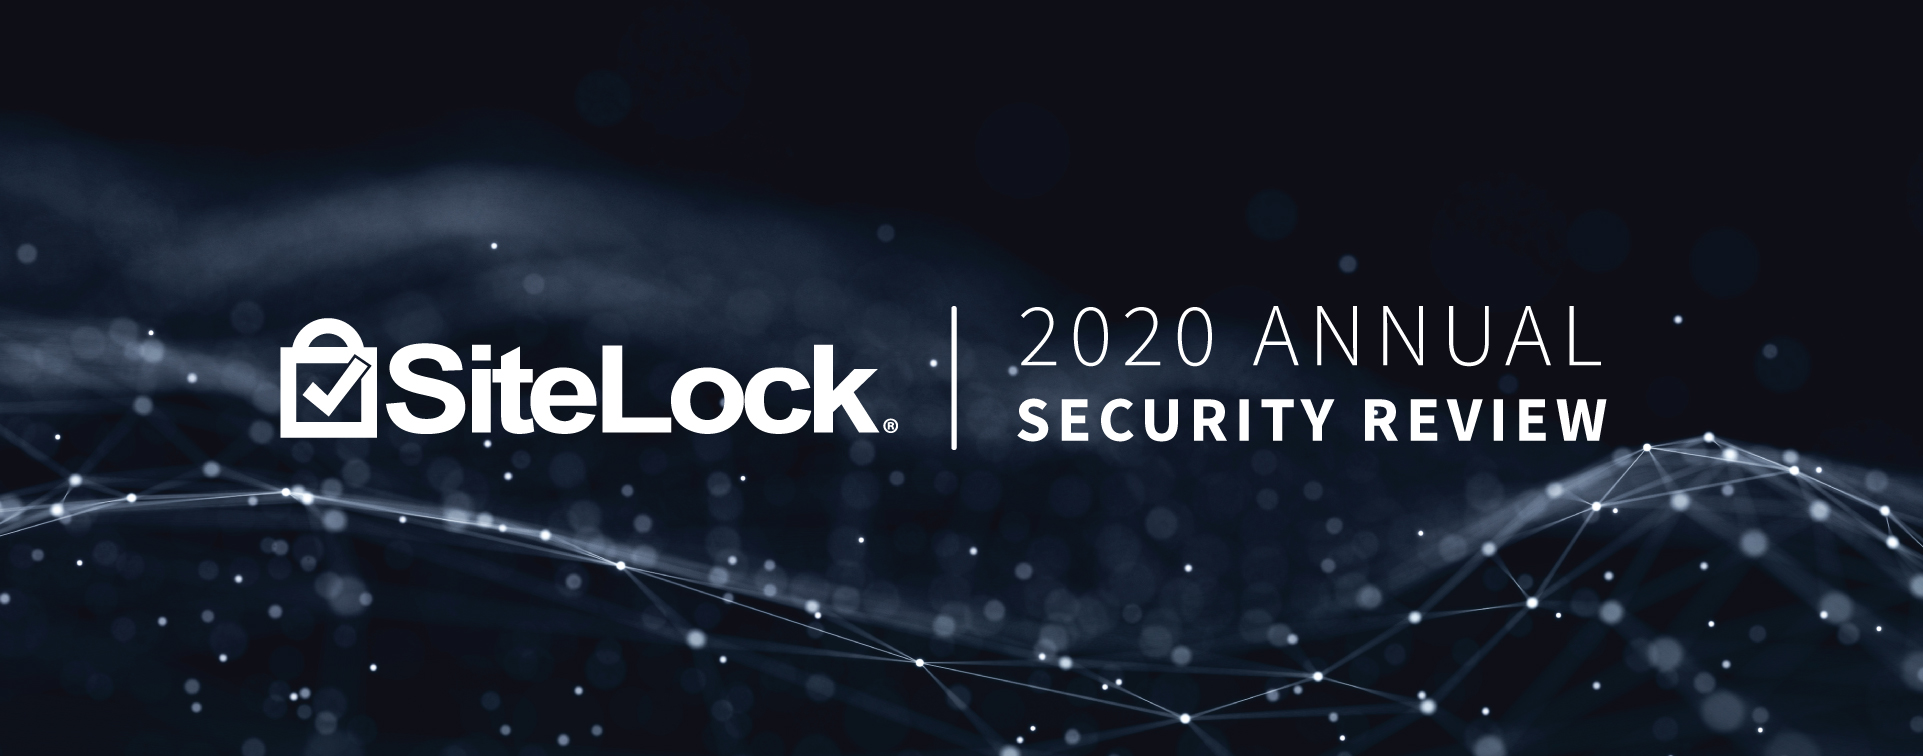 2020 Annual Security Review